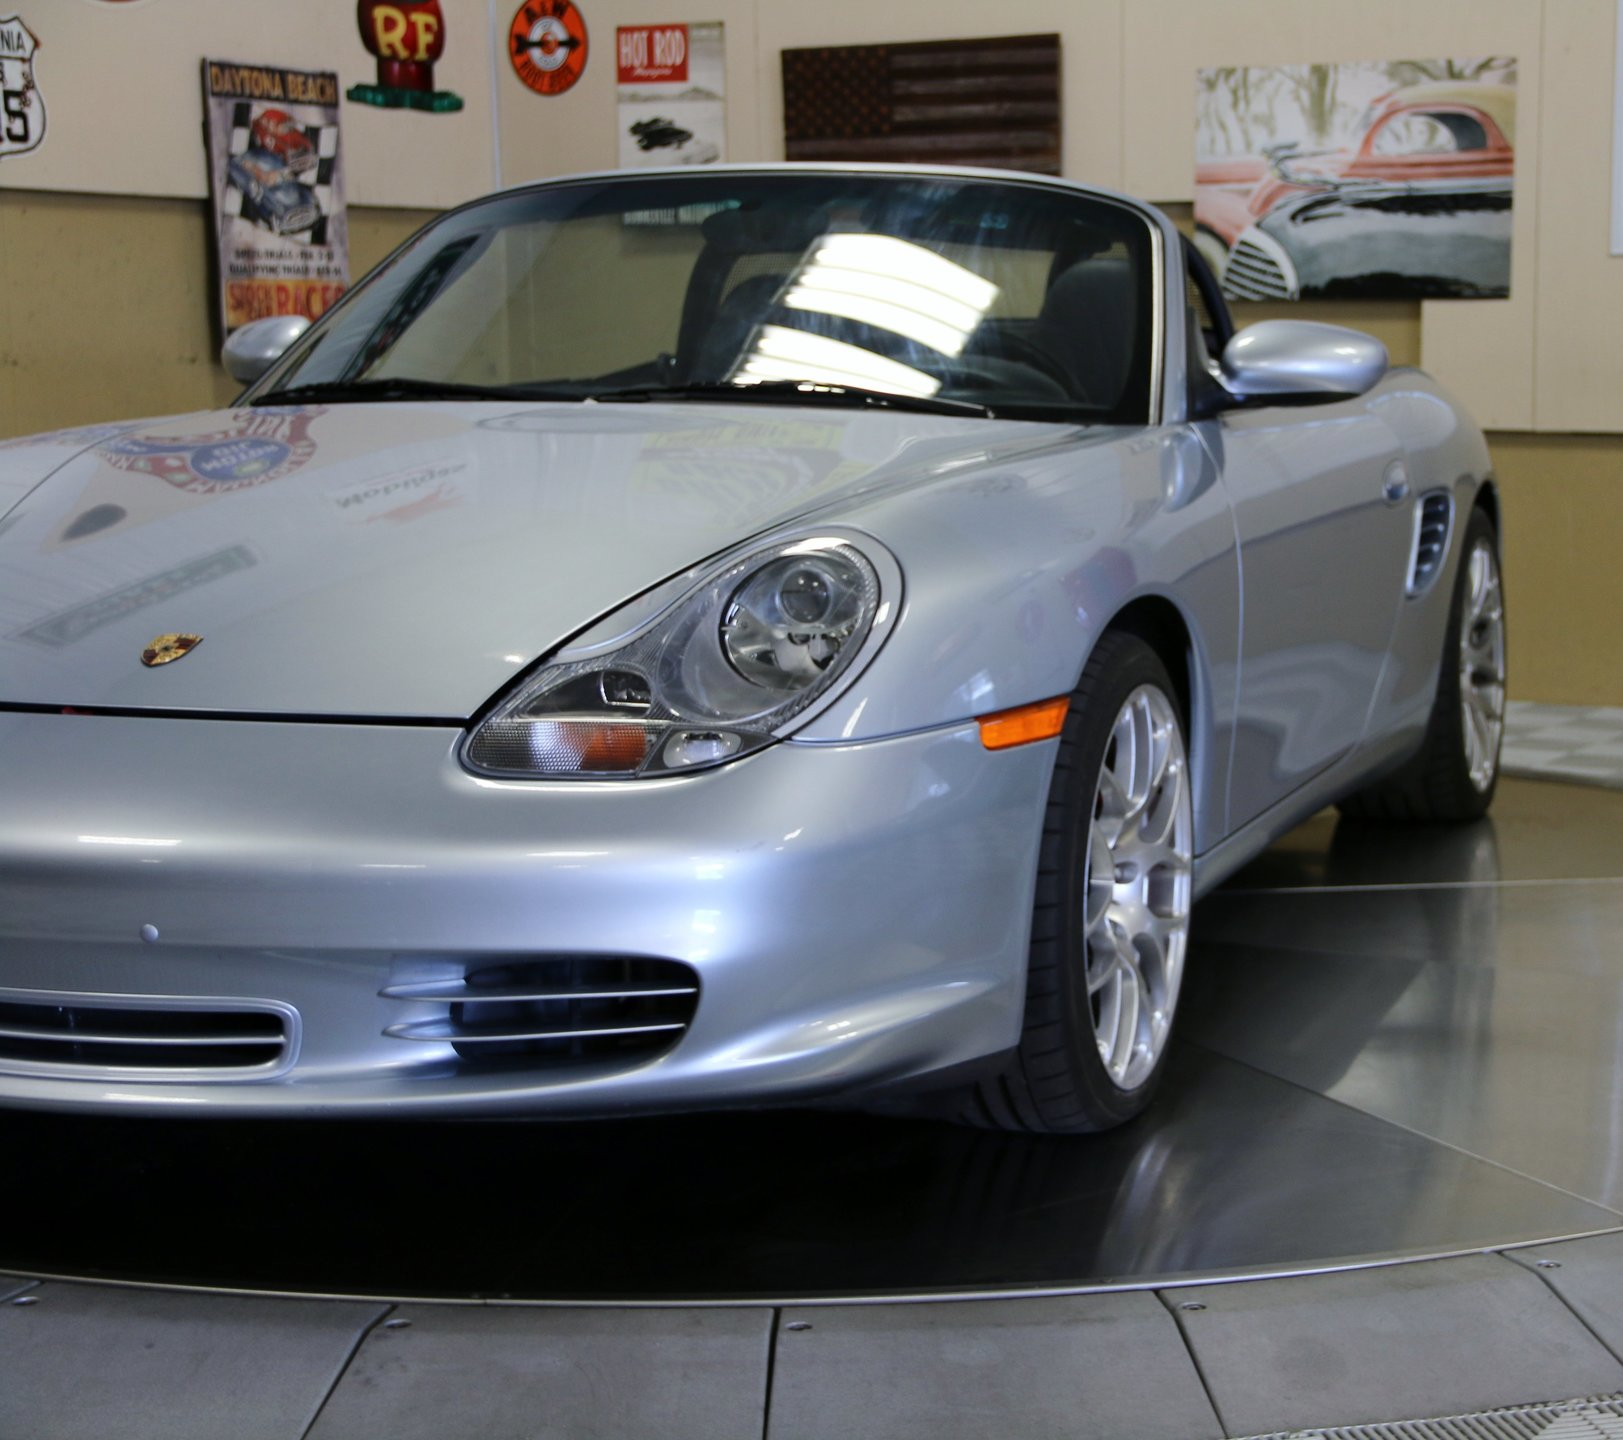 Porsche Boxster Engine Options: 2003 Porsche Boxster